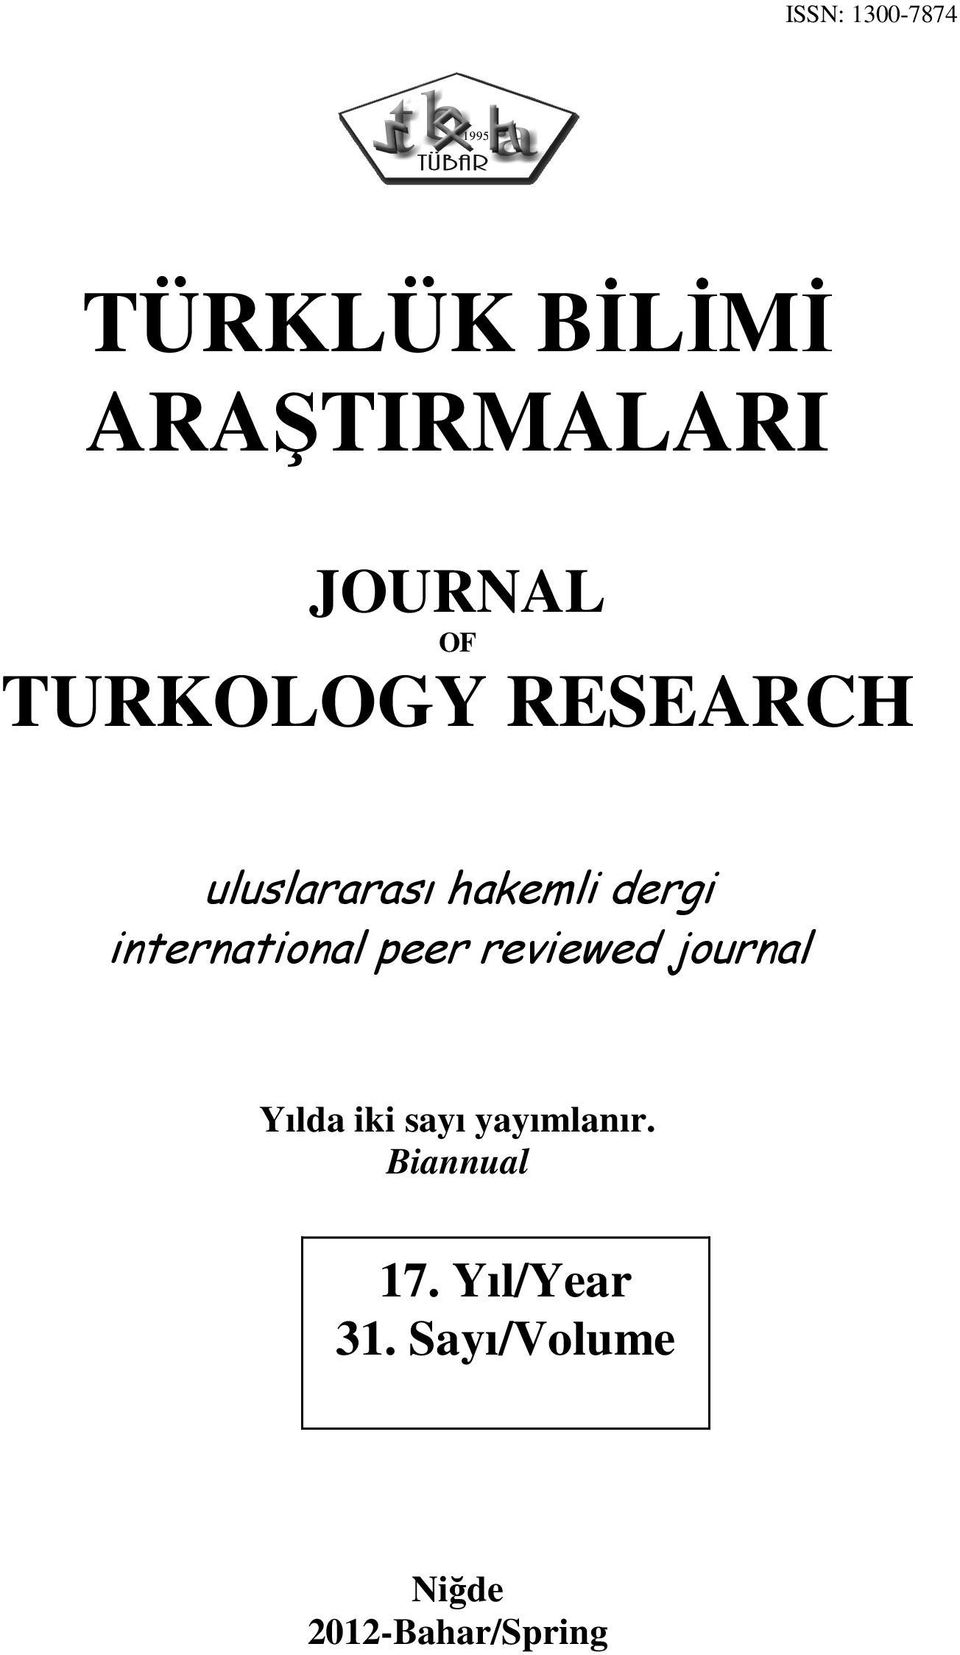 international peer reviewed journal Yılda iki sayı